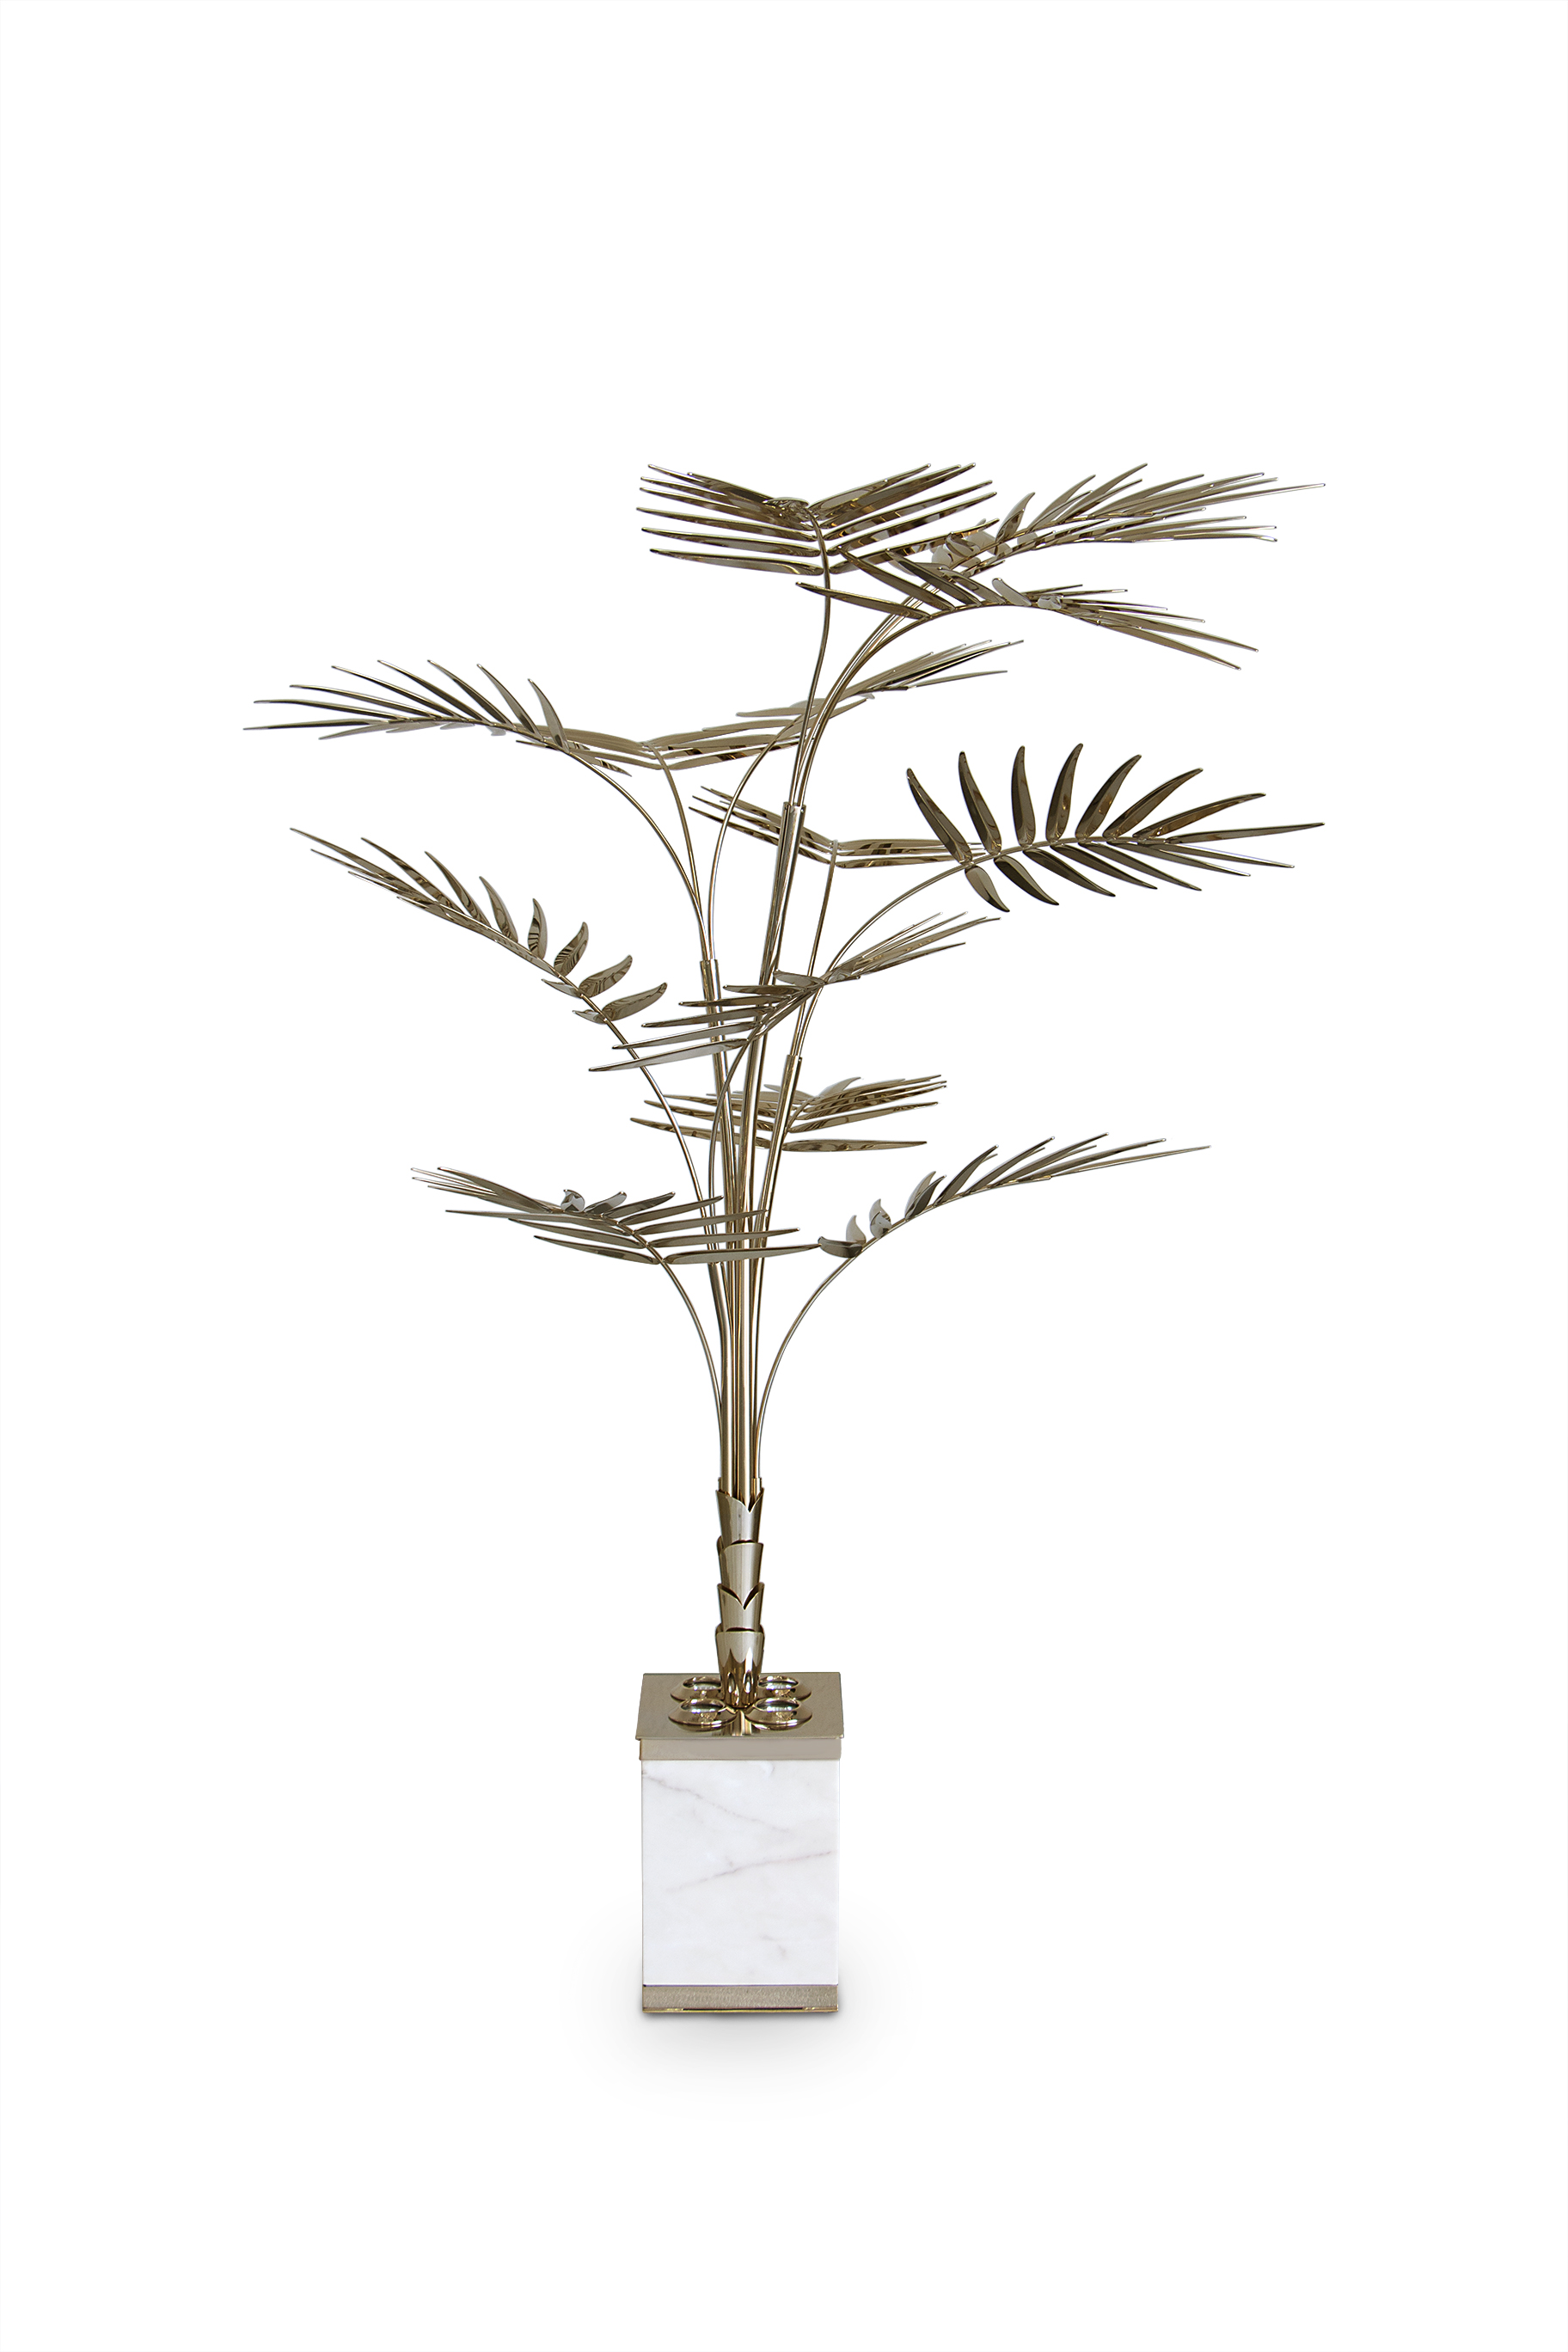 most popular rooms on pinterest The Most Popular Rooms on Pinterest by Elle Decor ivete floor lamp 01 HR